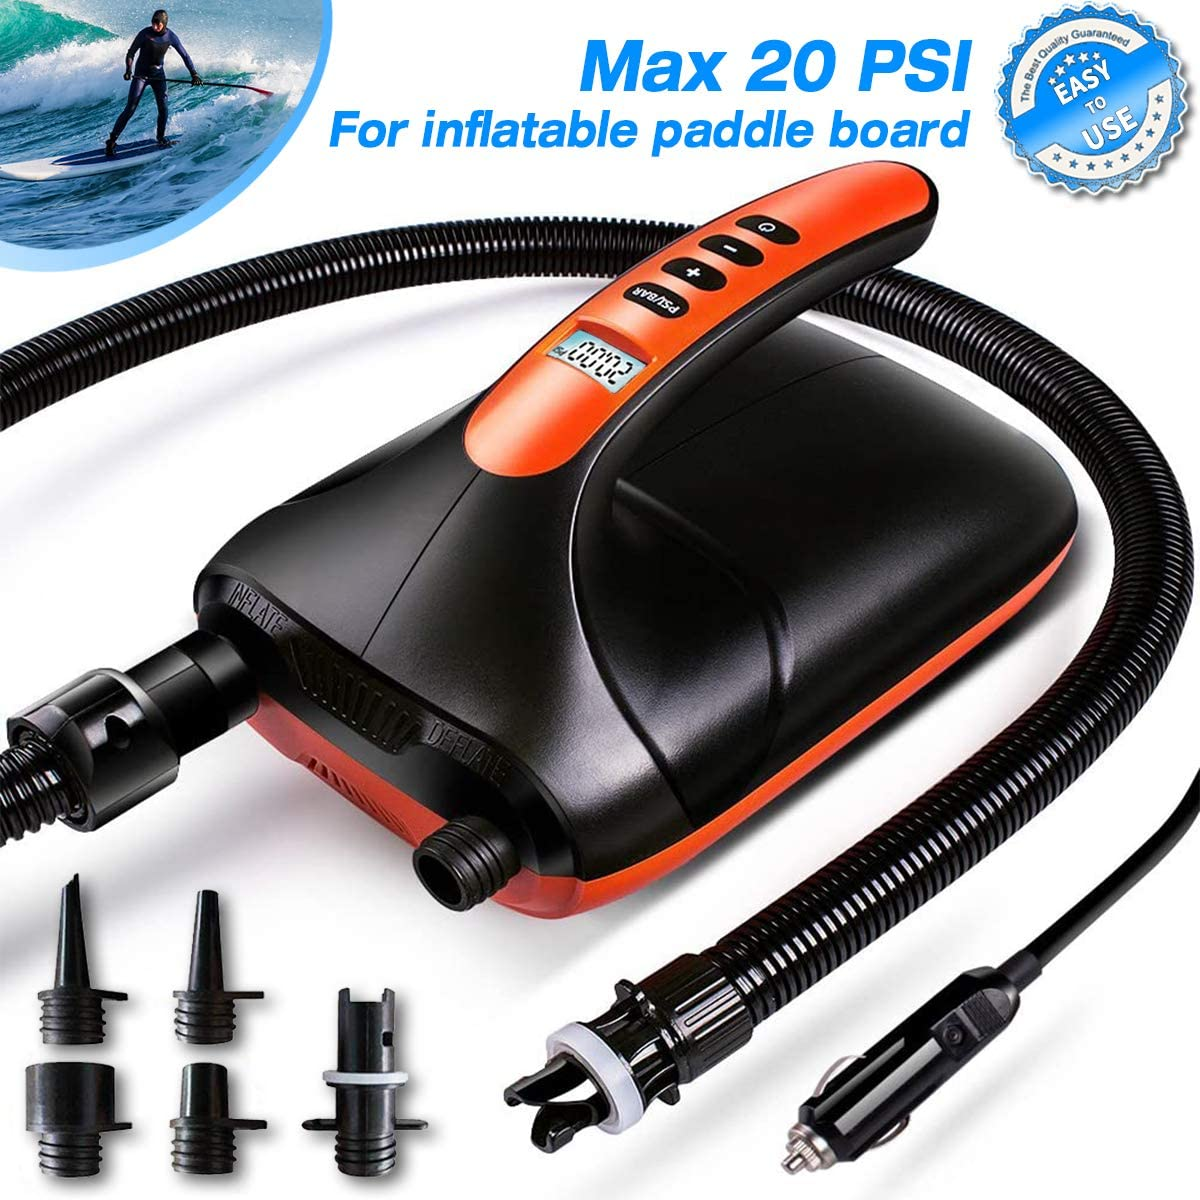 20PSI High Pressure SUP Pump Dual Stage 12V DC, Electric Inflatable Paddle Board Pump Auto-Off Function for Stand Up Paddle Board,Inflatable Boats/Tent/Kayak